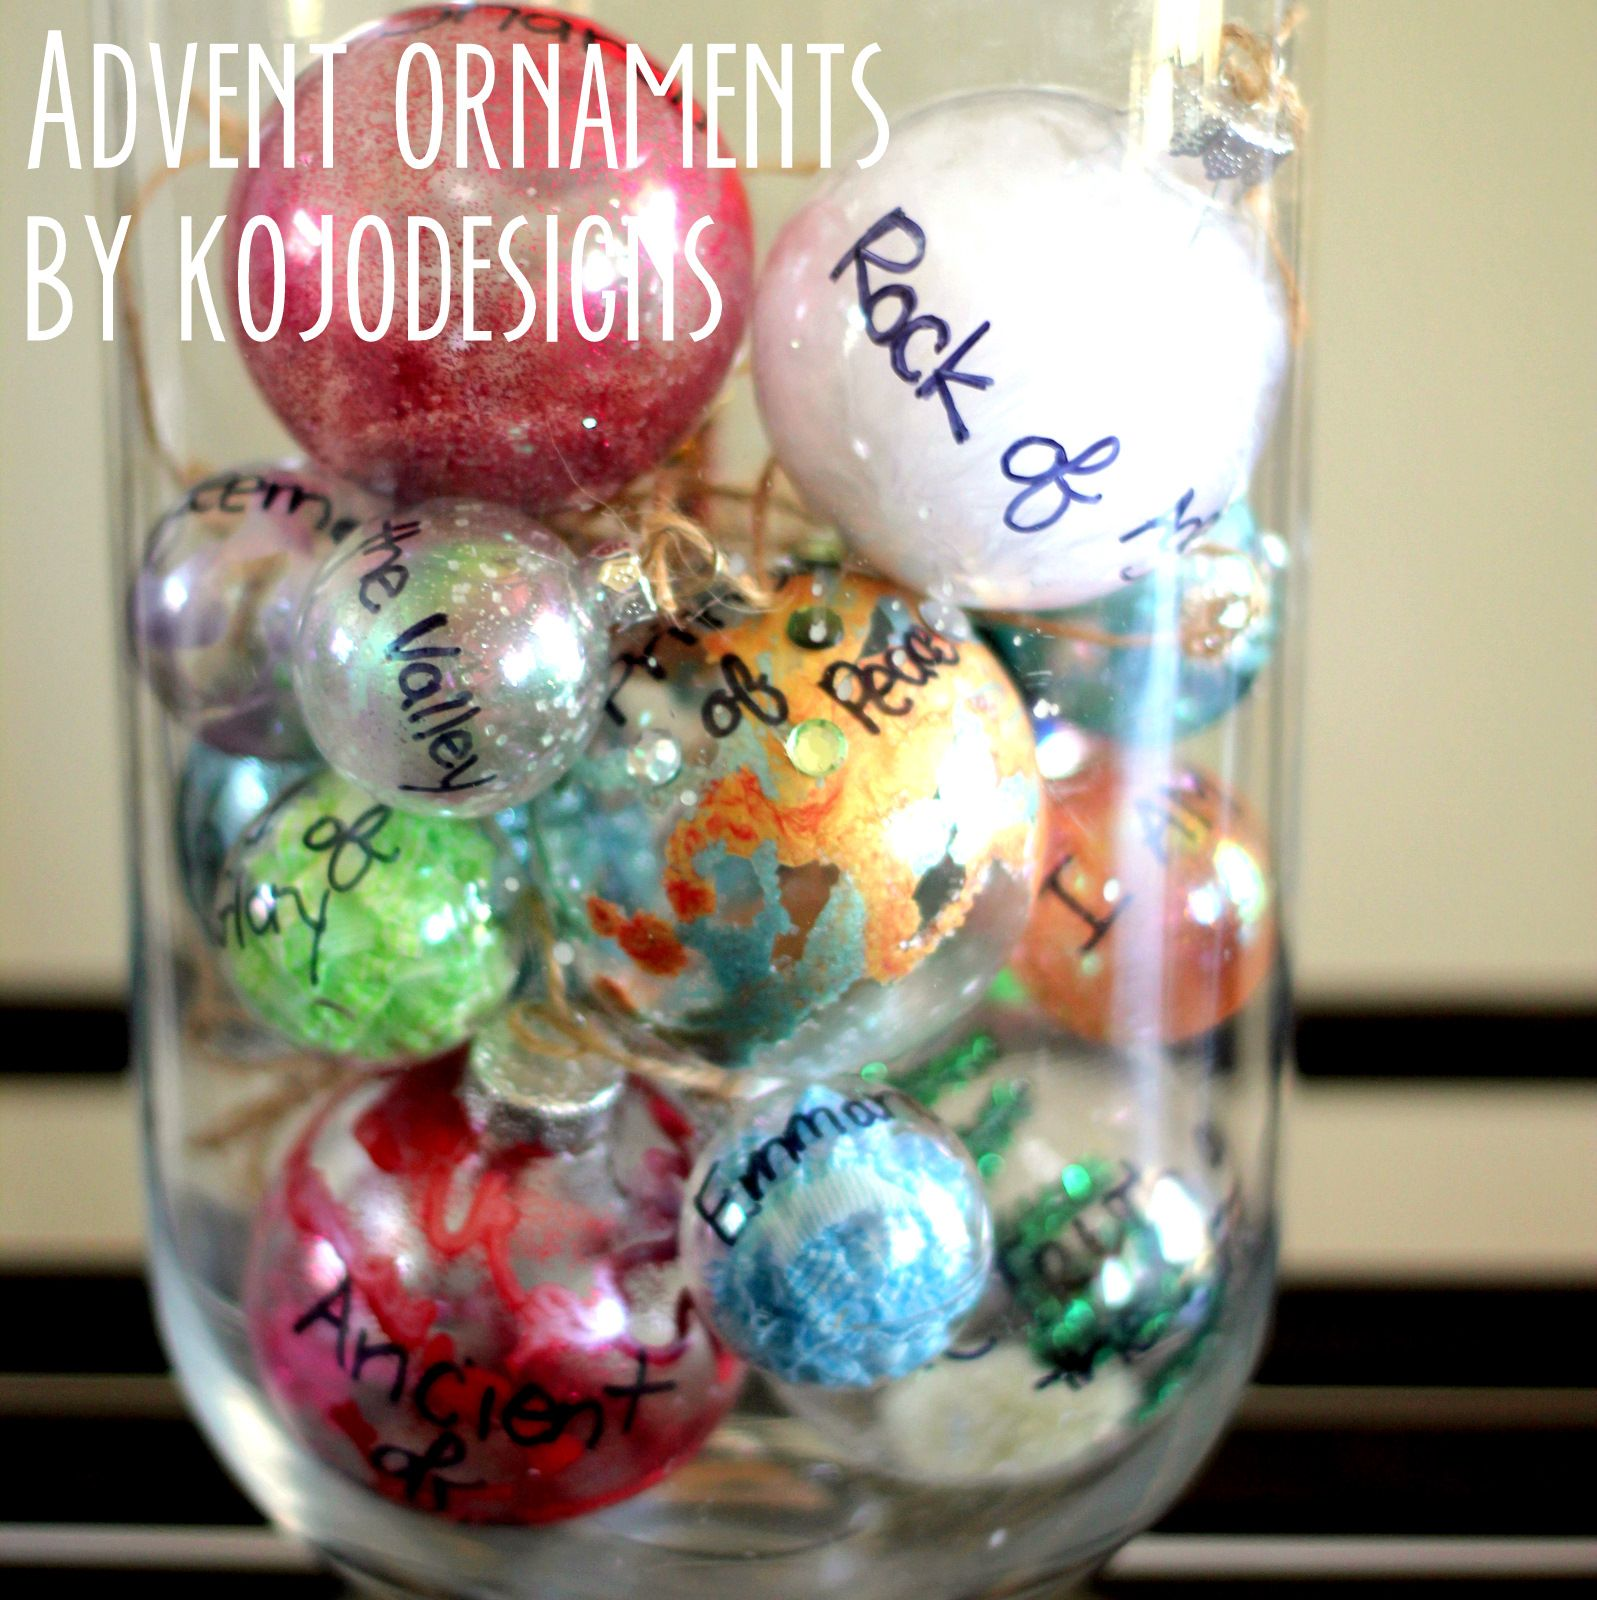 Christmas Decorations With Names On Them: Names Of Jesus Christmas Ornaments